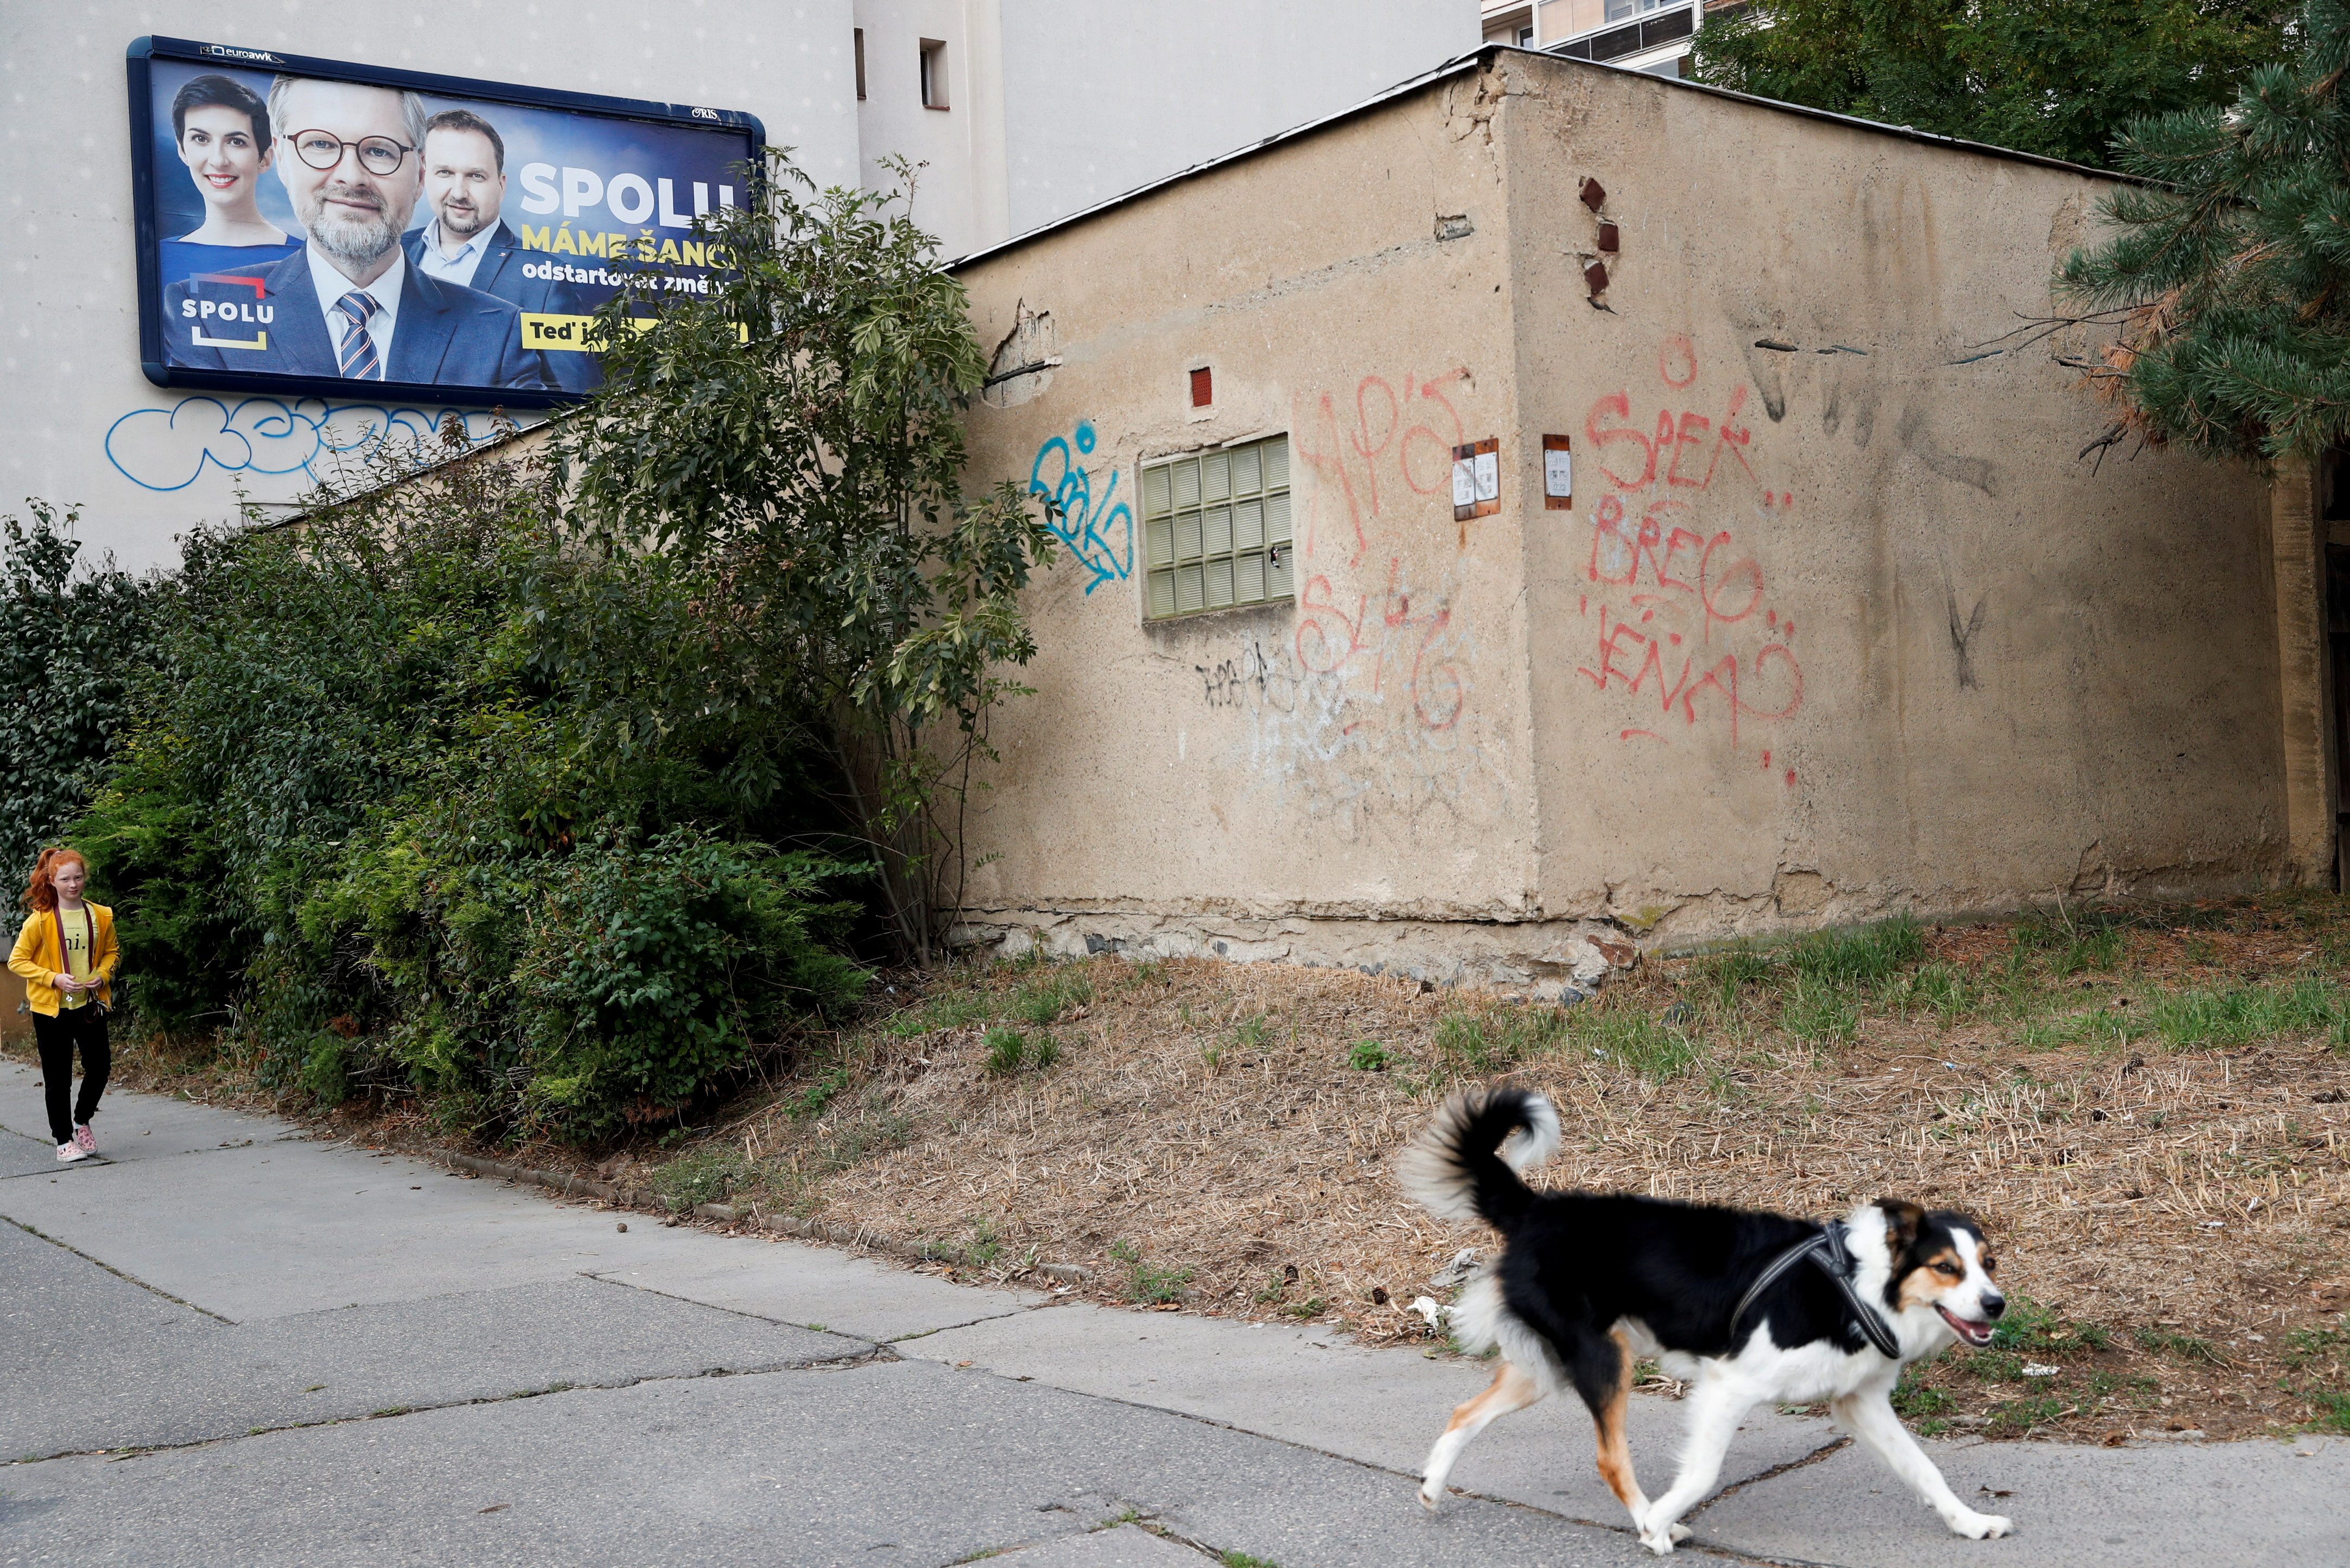 An election billboard for the leader of Civic Democratic Party (ODS) and Together (SPOLU) coalition candidate Petr Fiala is seen ahead of Czech parliamentary election in Prague, Czech Republic, October 7, 2021. REUTERS/Bernadett Szabo/File Photo